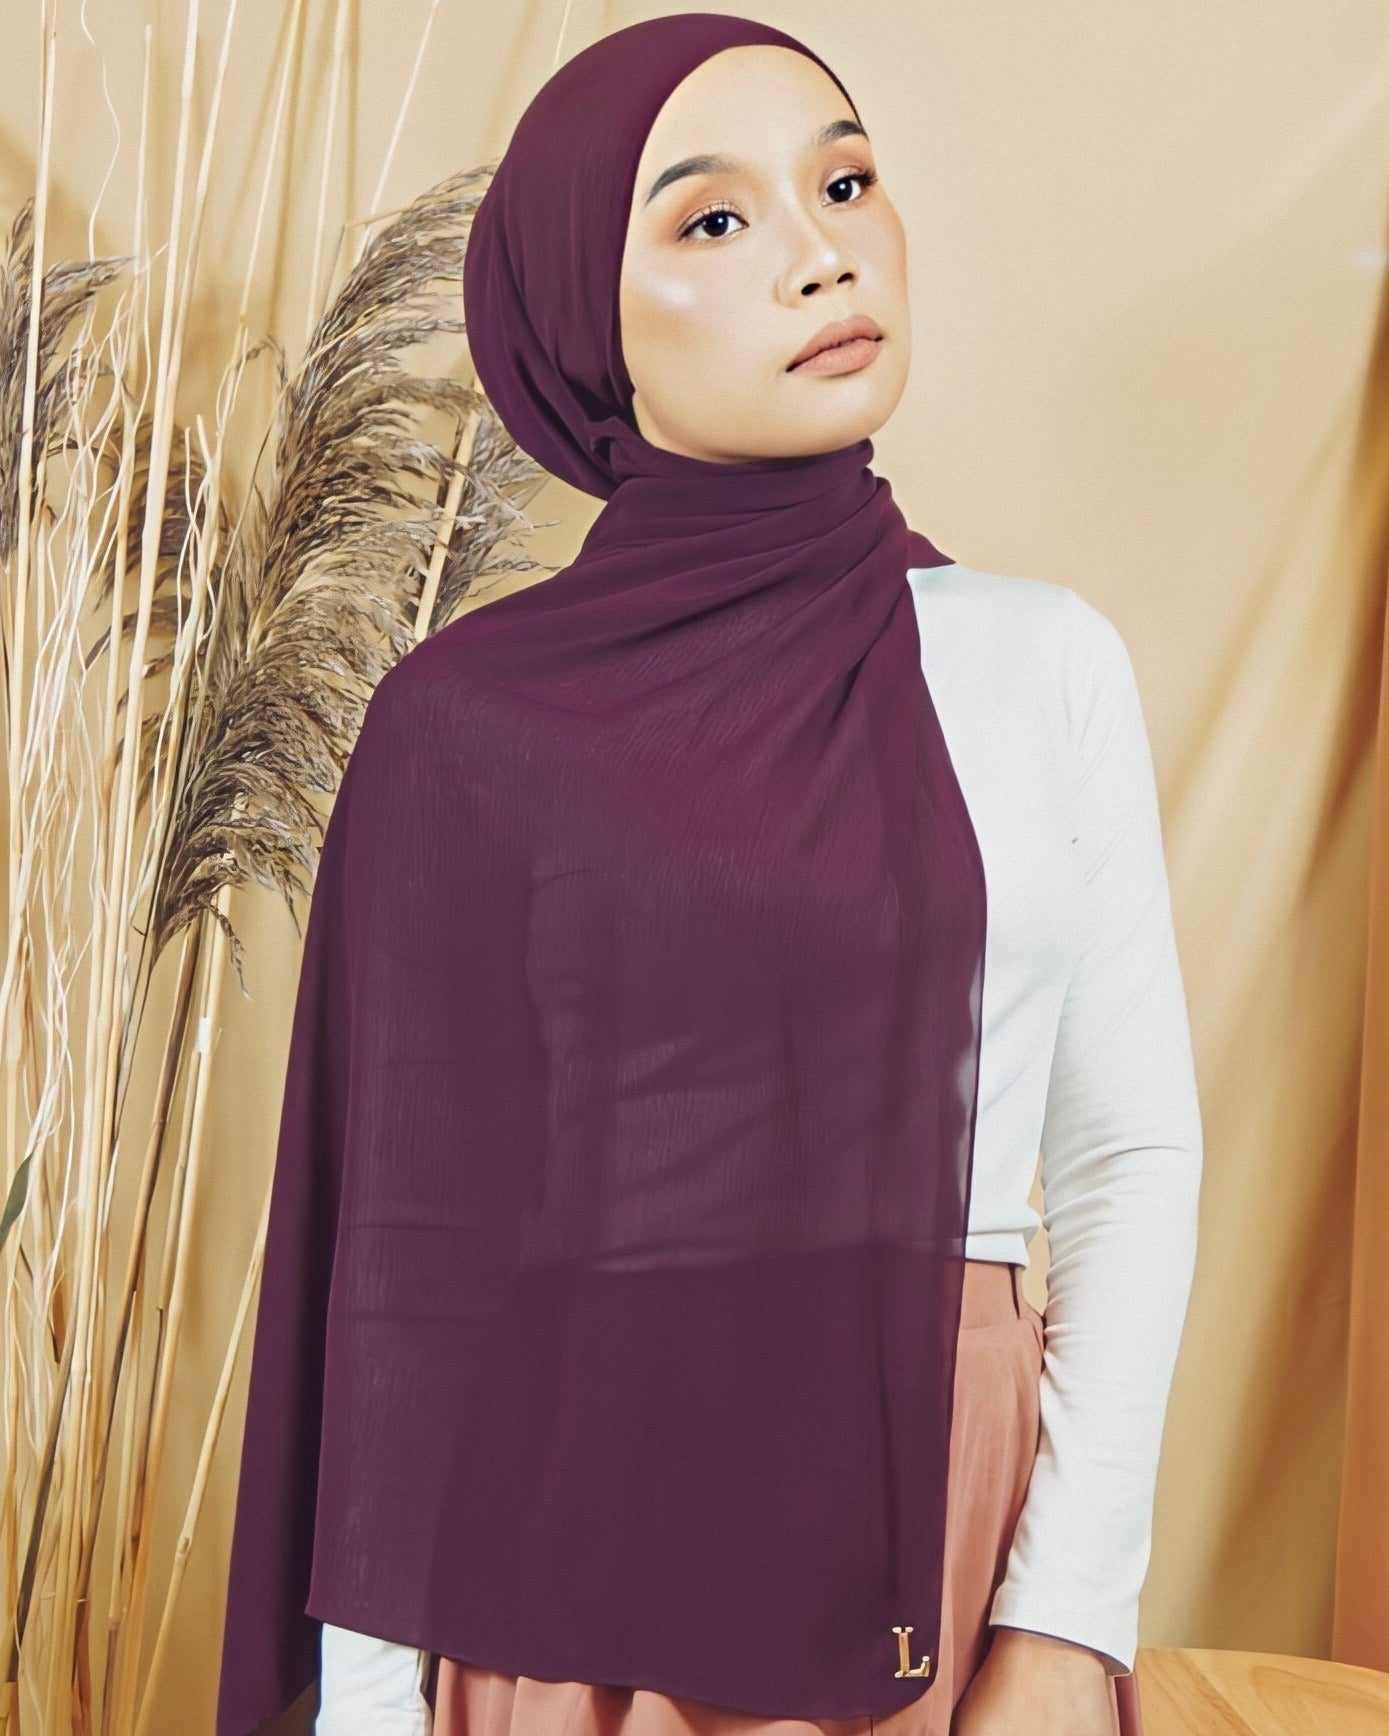 Selma Luxe Chiffon in Plum - Defect